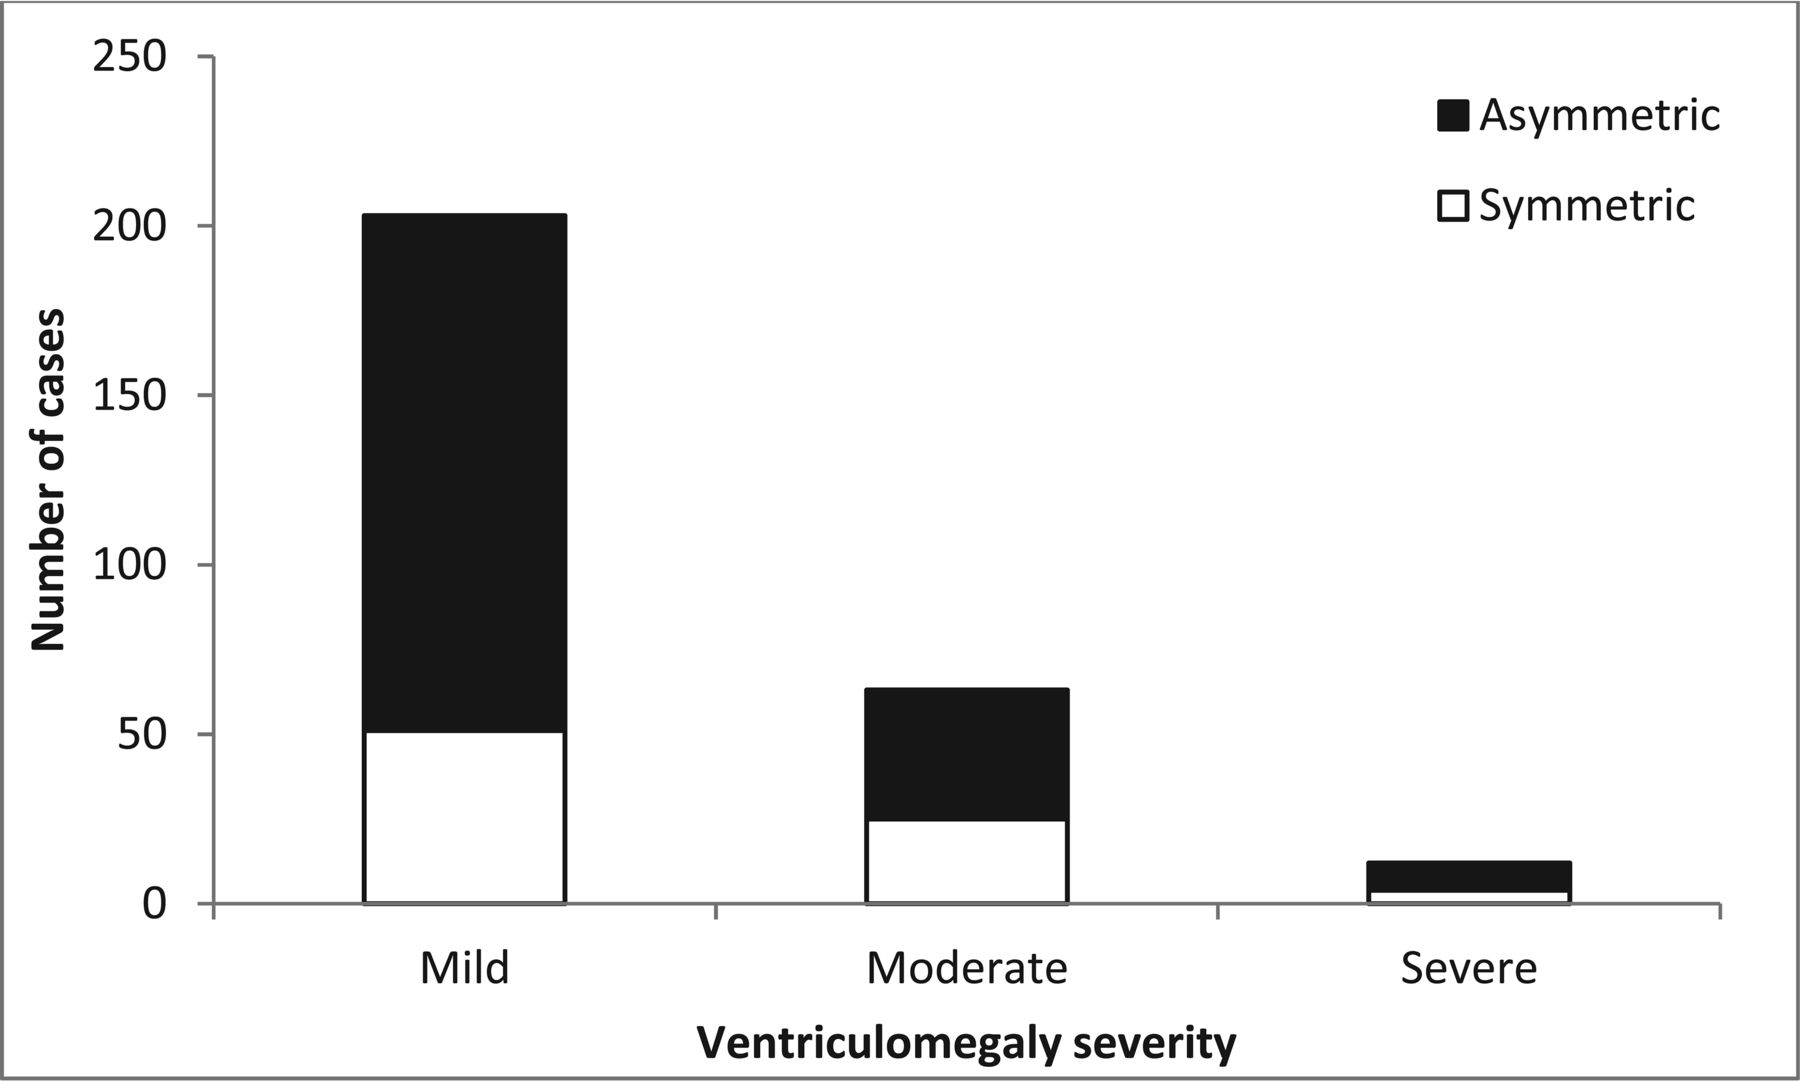 Fetal Brain Anomalies Associated with Ventriculomegaly or Asymmetry